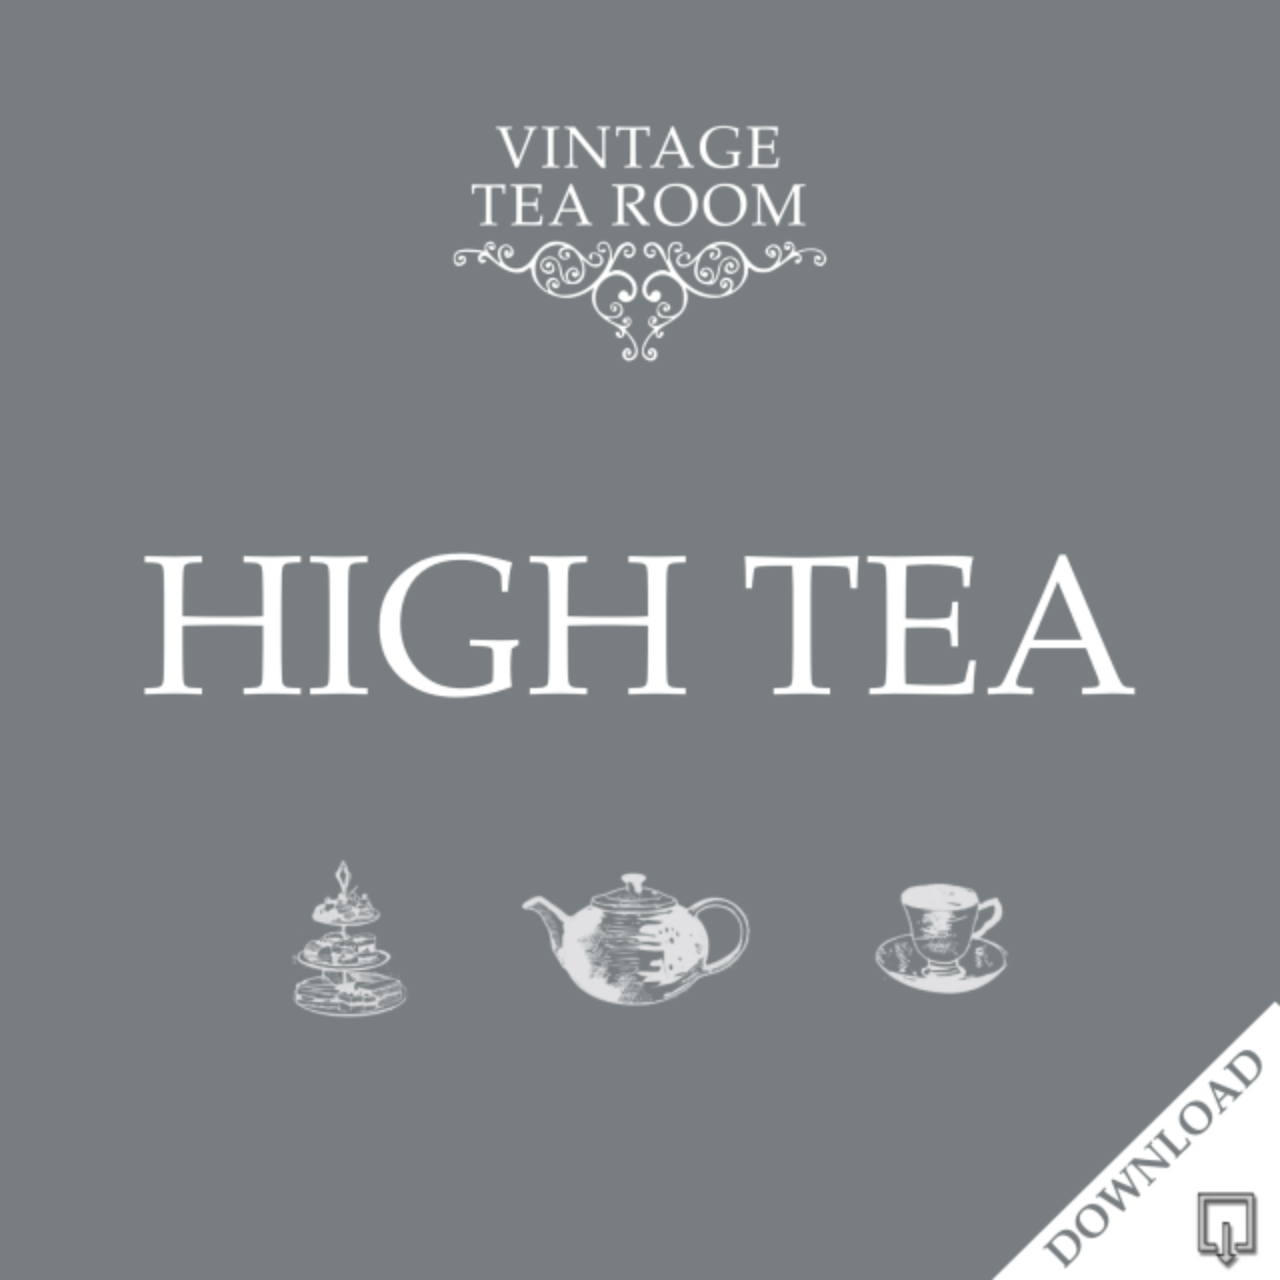 Vintage High Tea For One - Downloadable Voucher